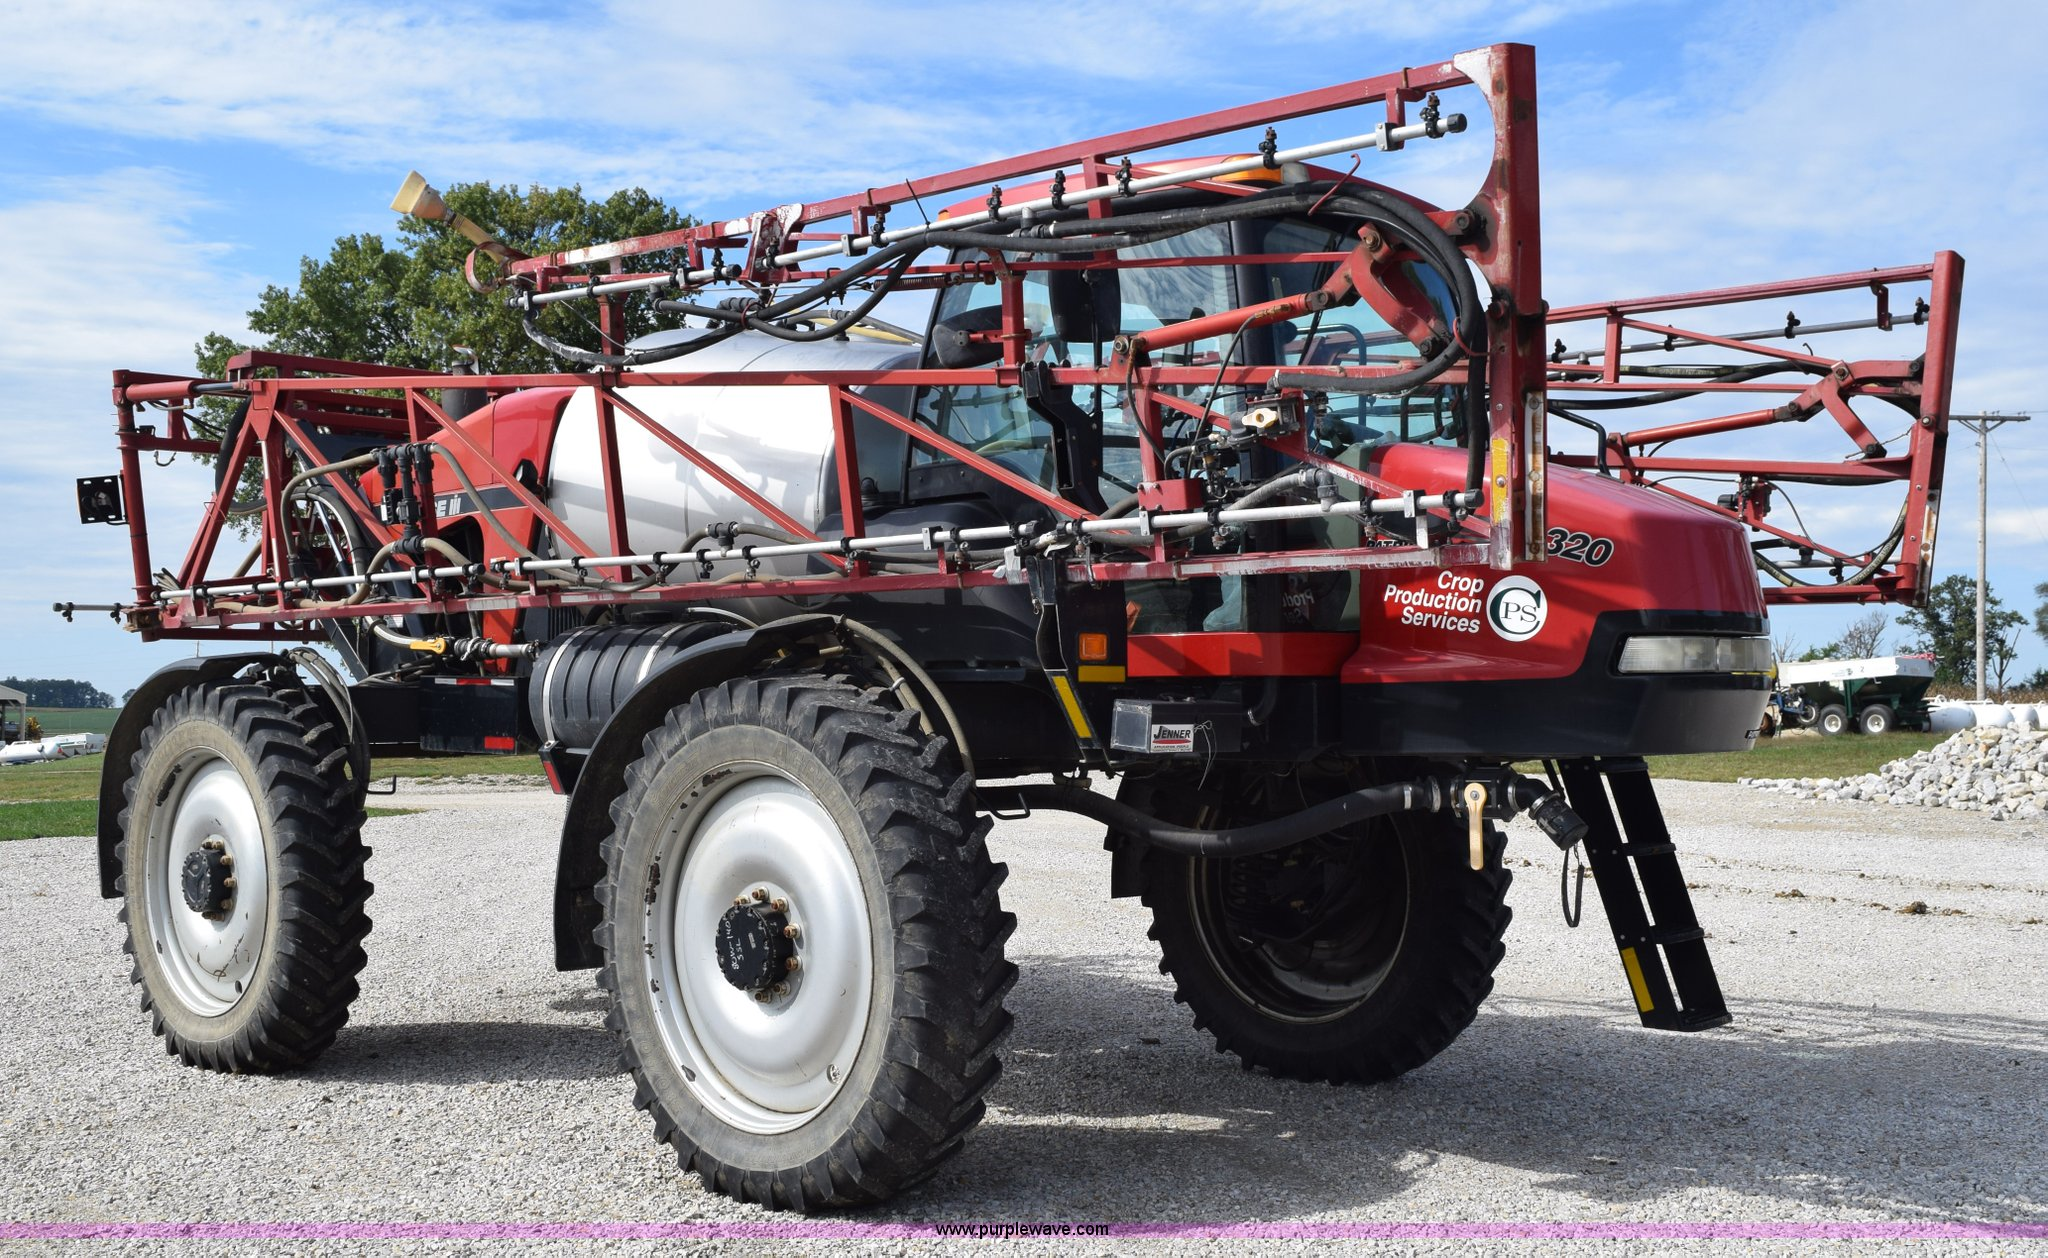 c5197de1244 2007 Case IH Patriot 3320 self-propelled sprayer